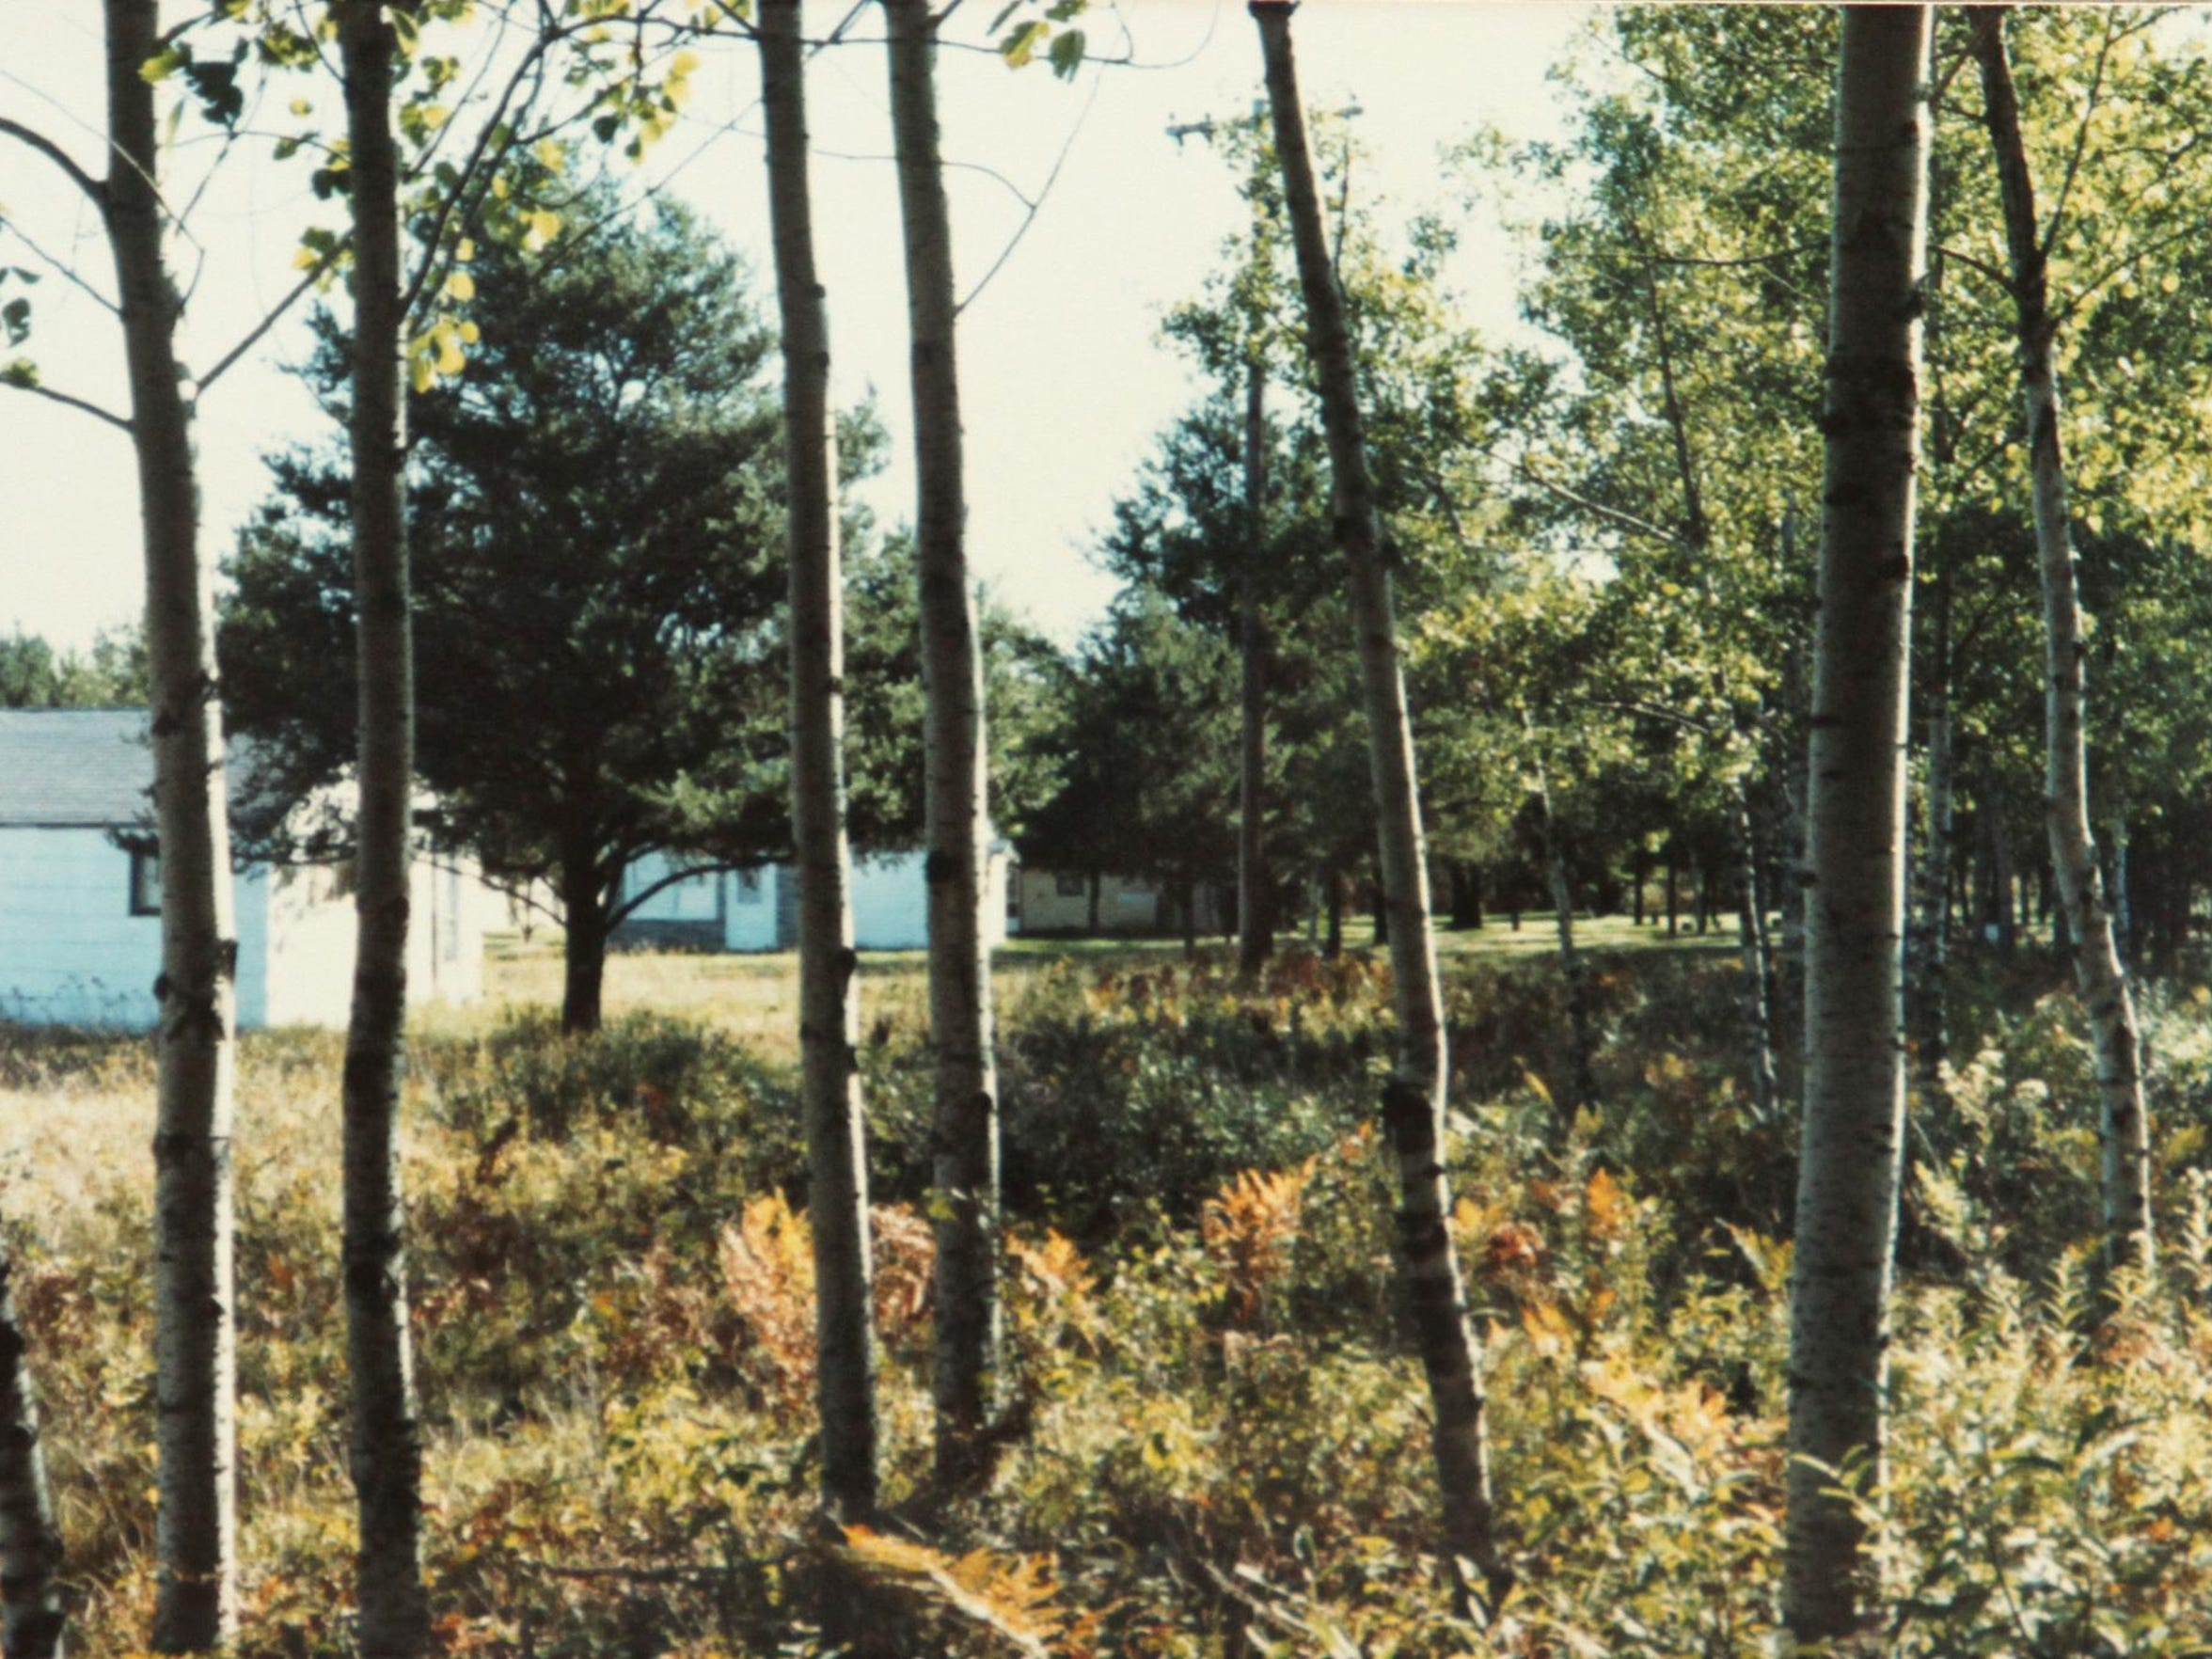 The white cabin in Gladwin where Ronald Lloyd Bailey molested and murdered 13-year-old Shawn Moore, of Green Oak Township, in 1985 is seen here through the trees.